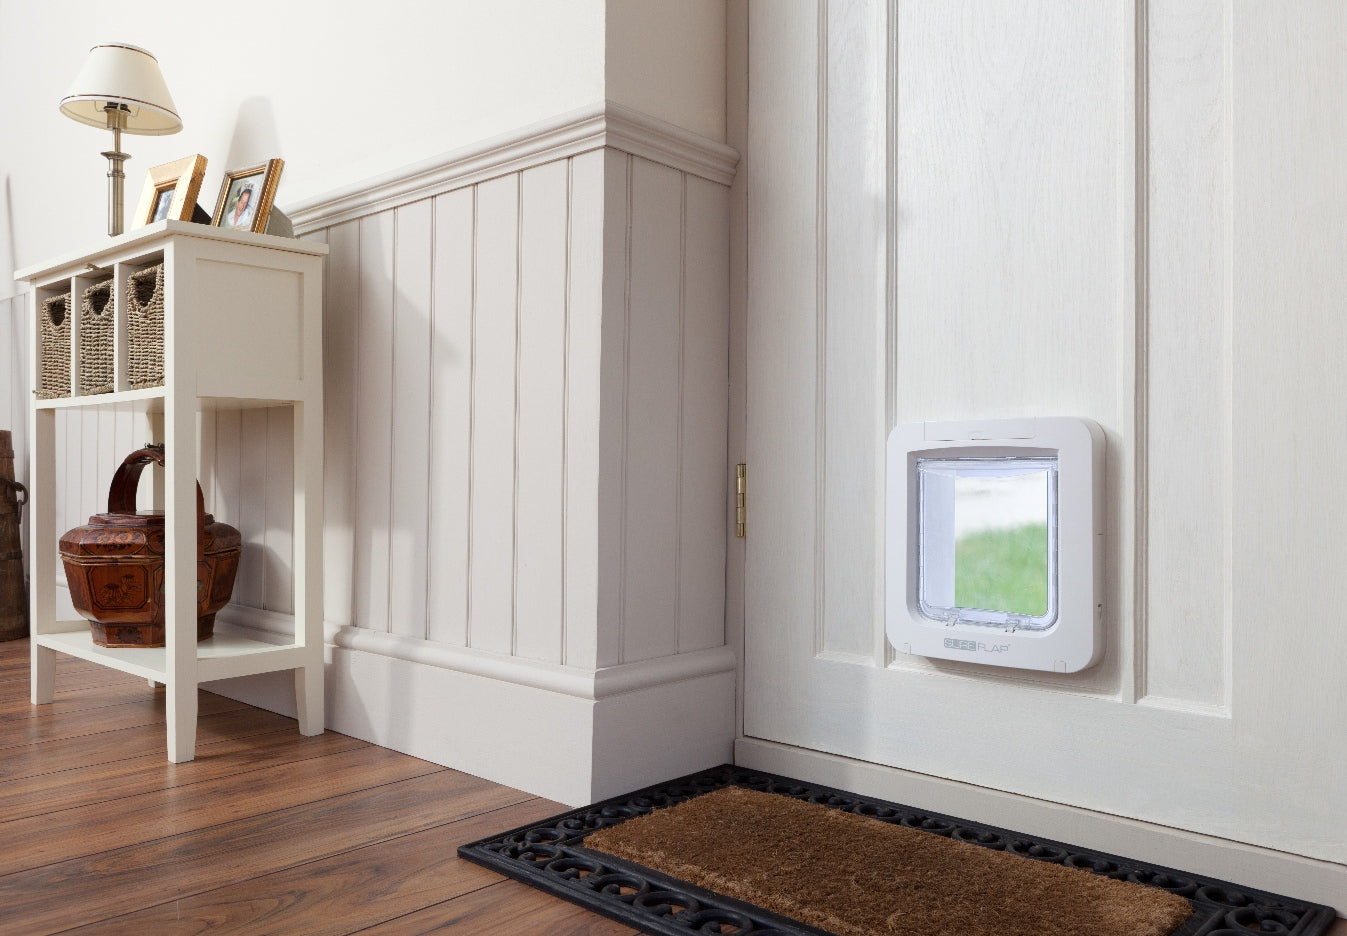 the Sureflap electronic microchip pet door installed into a wall